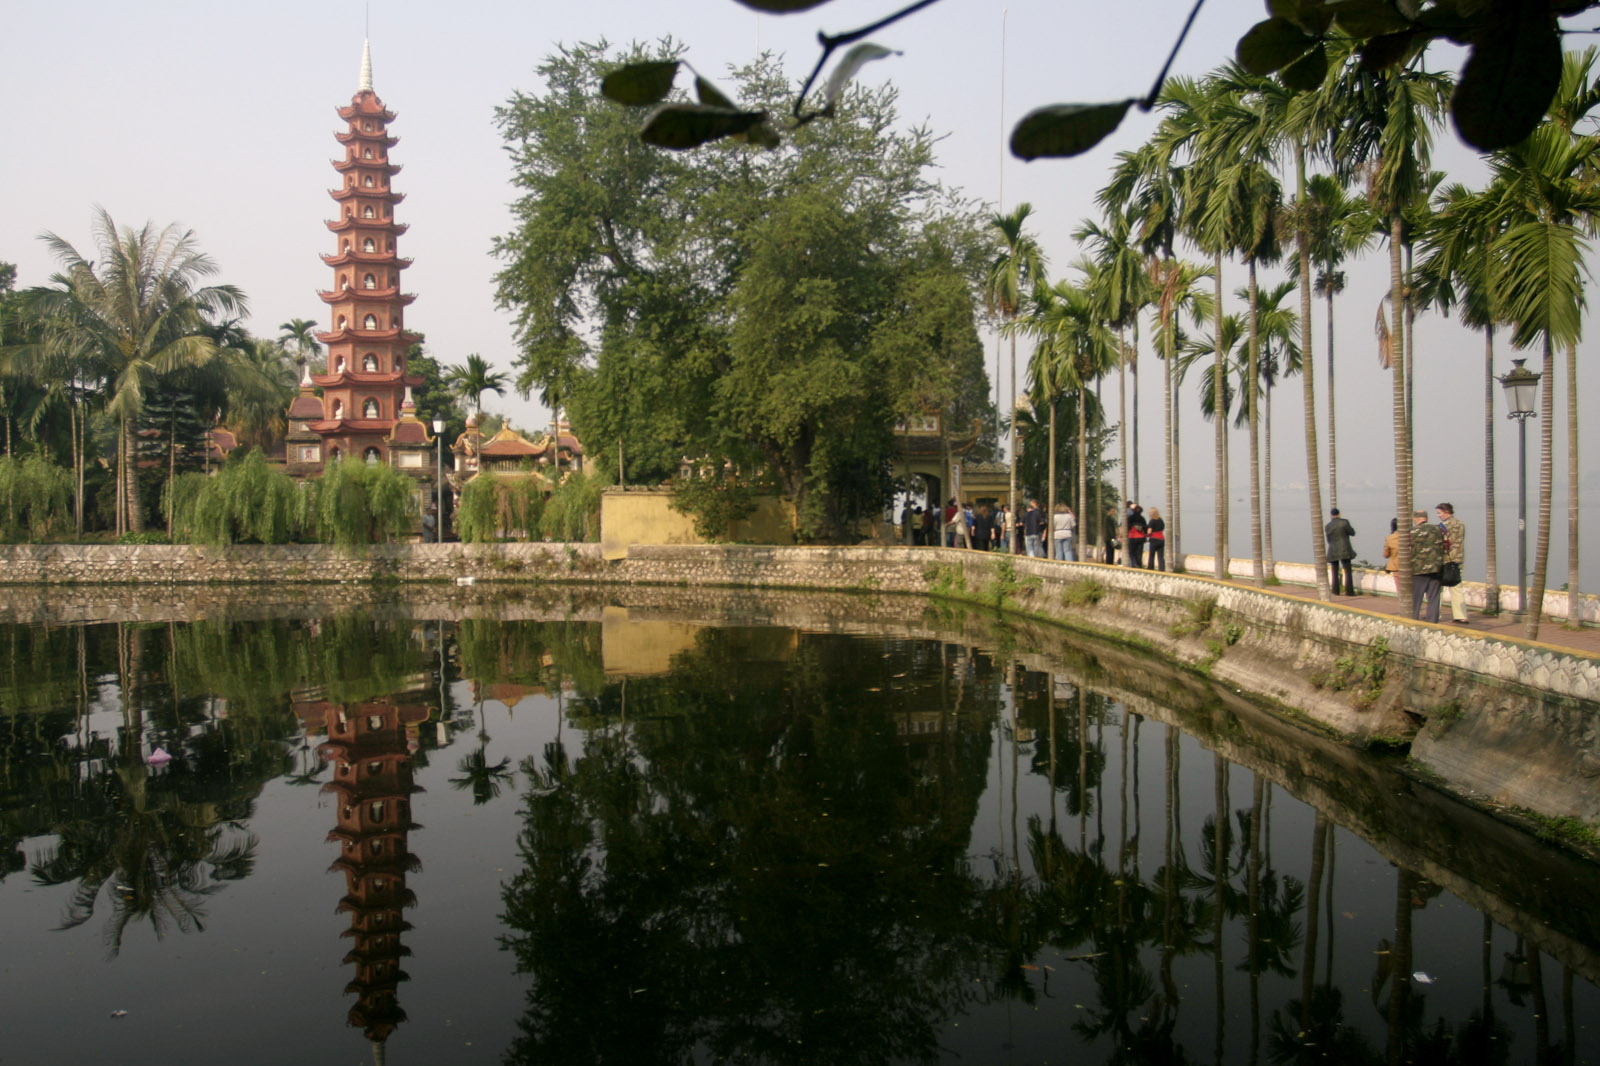 Tran Quoc Pagoda, West Lake, Hanoi